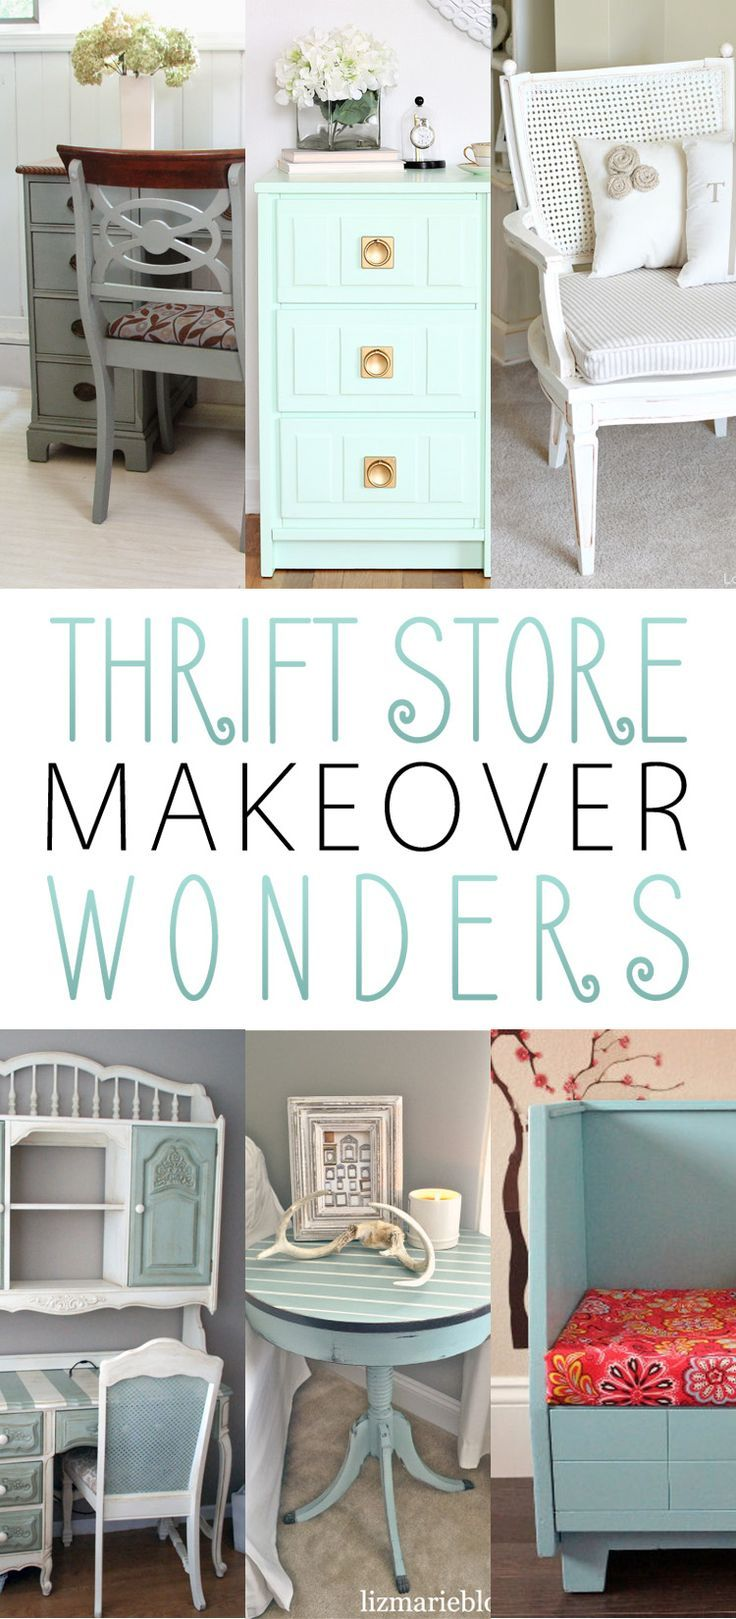 275 Best Thrift Store Furniture Flips Images On Pinterest Thrift Store Furniture Furniture